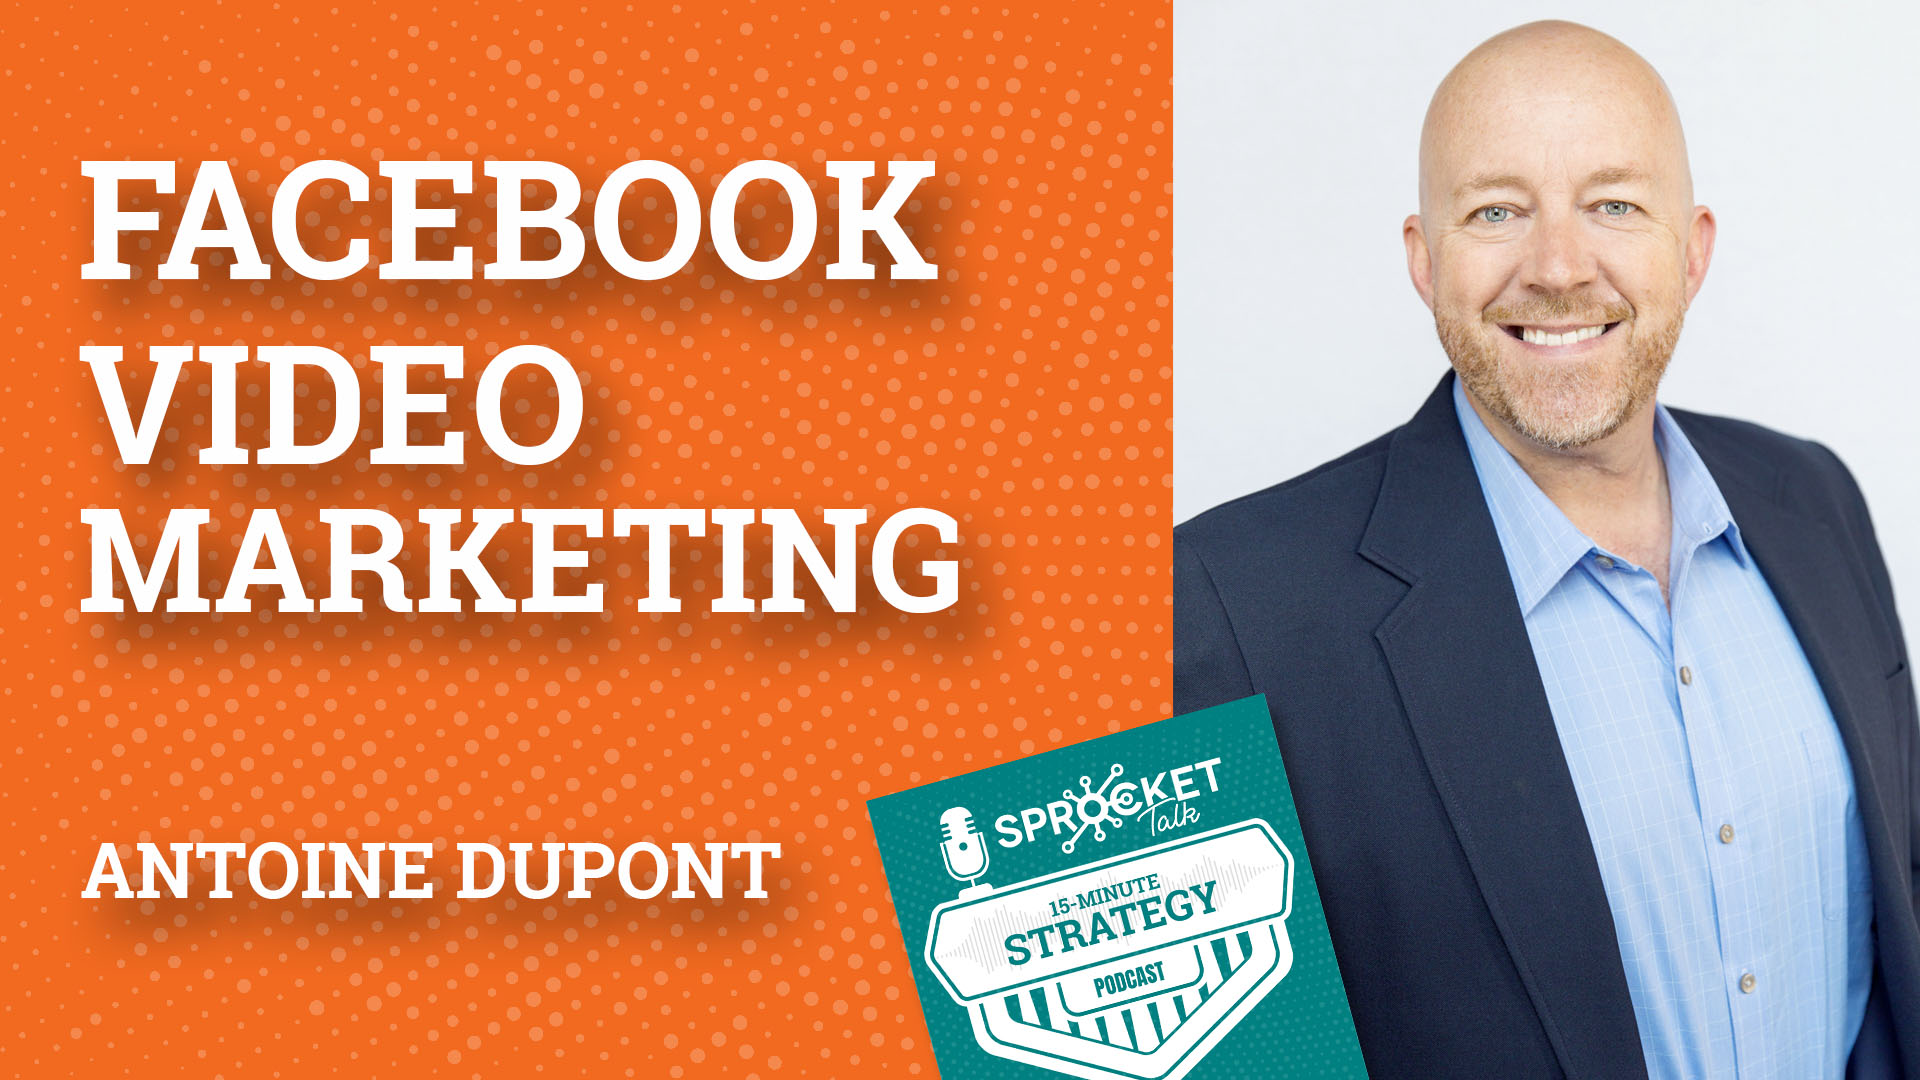 Antoine Dupont on Facebook Video Marketing Strategy | 15-Minute Strategy Podcast